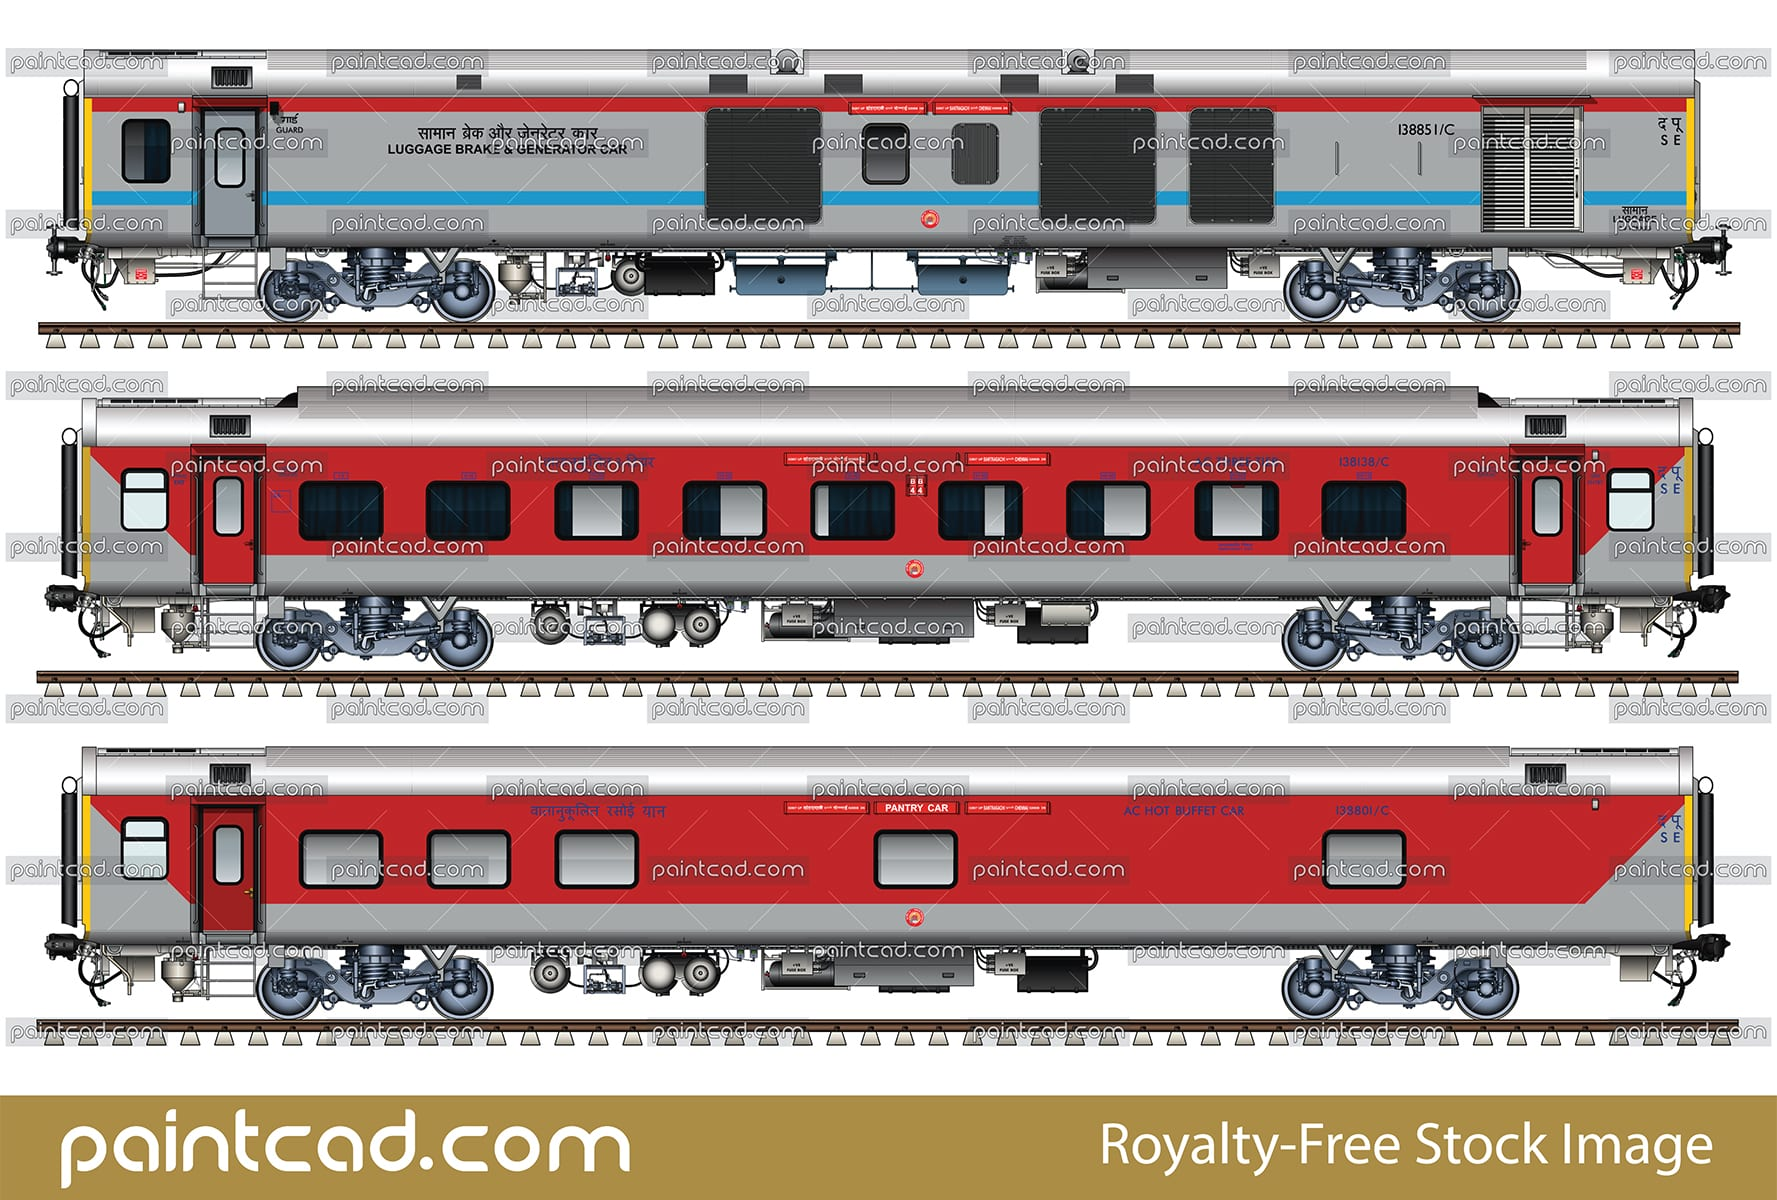 LHB rake of train 22807 Santragachi-Chennai AC express - set 1 - vector illustration